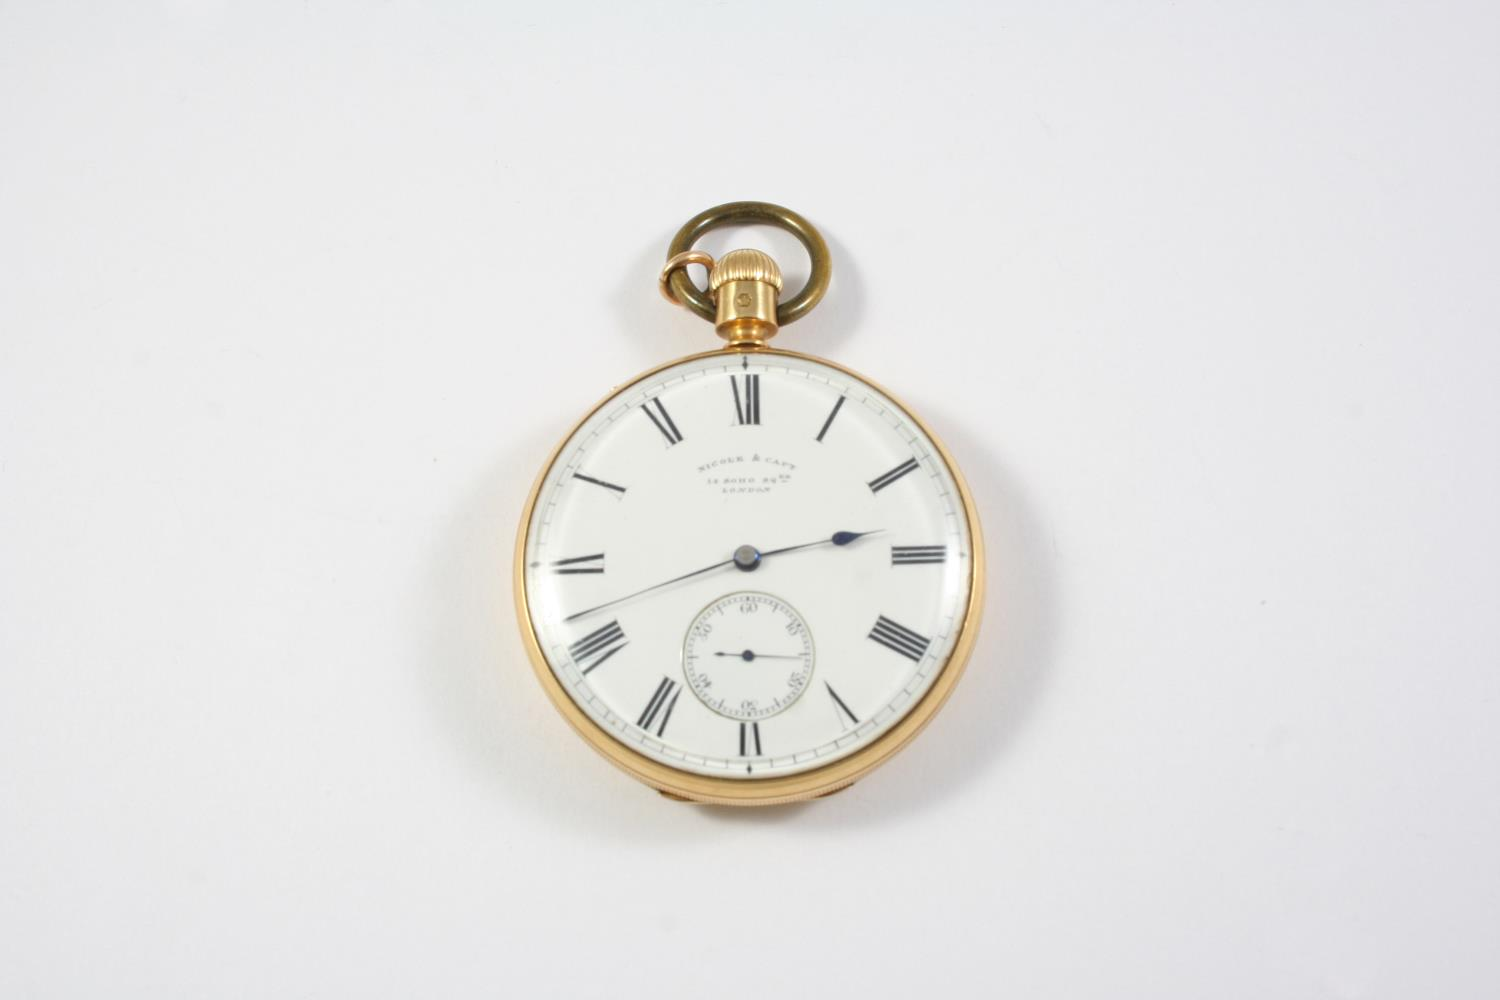 AN EARLY KEYLESS 18CT GOLD OPEN FACED POCKET WATCH BY NICOLE & CAPT, 14 SOHO SQ., LONDON the